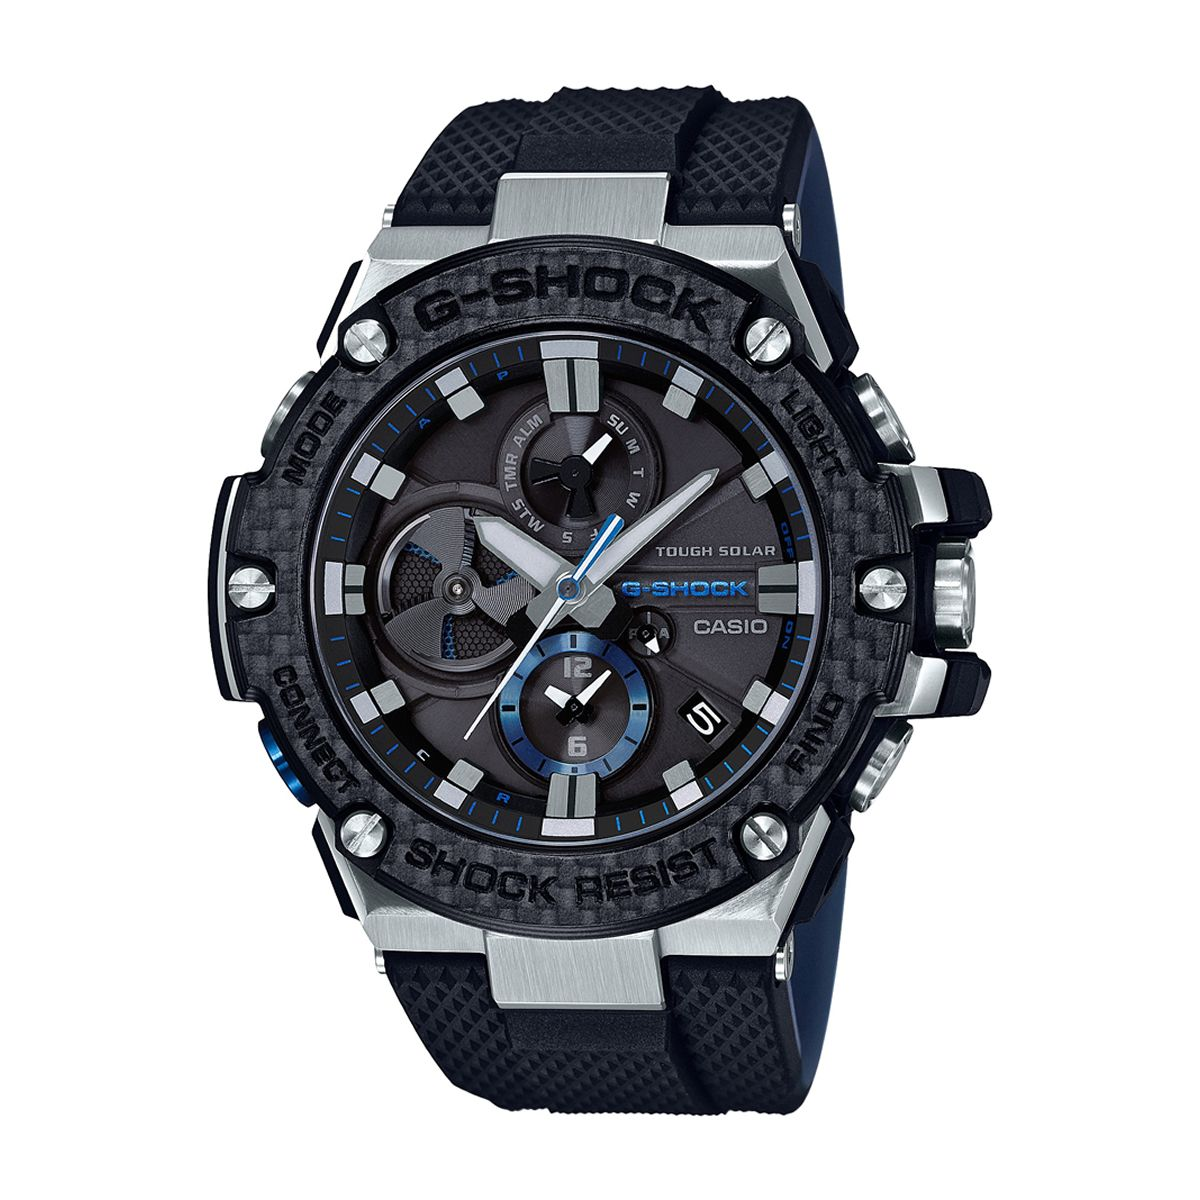 ded9291ac21 G-Shock Watches - Macy s